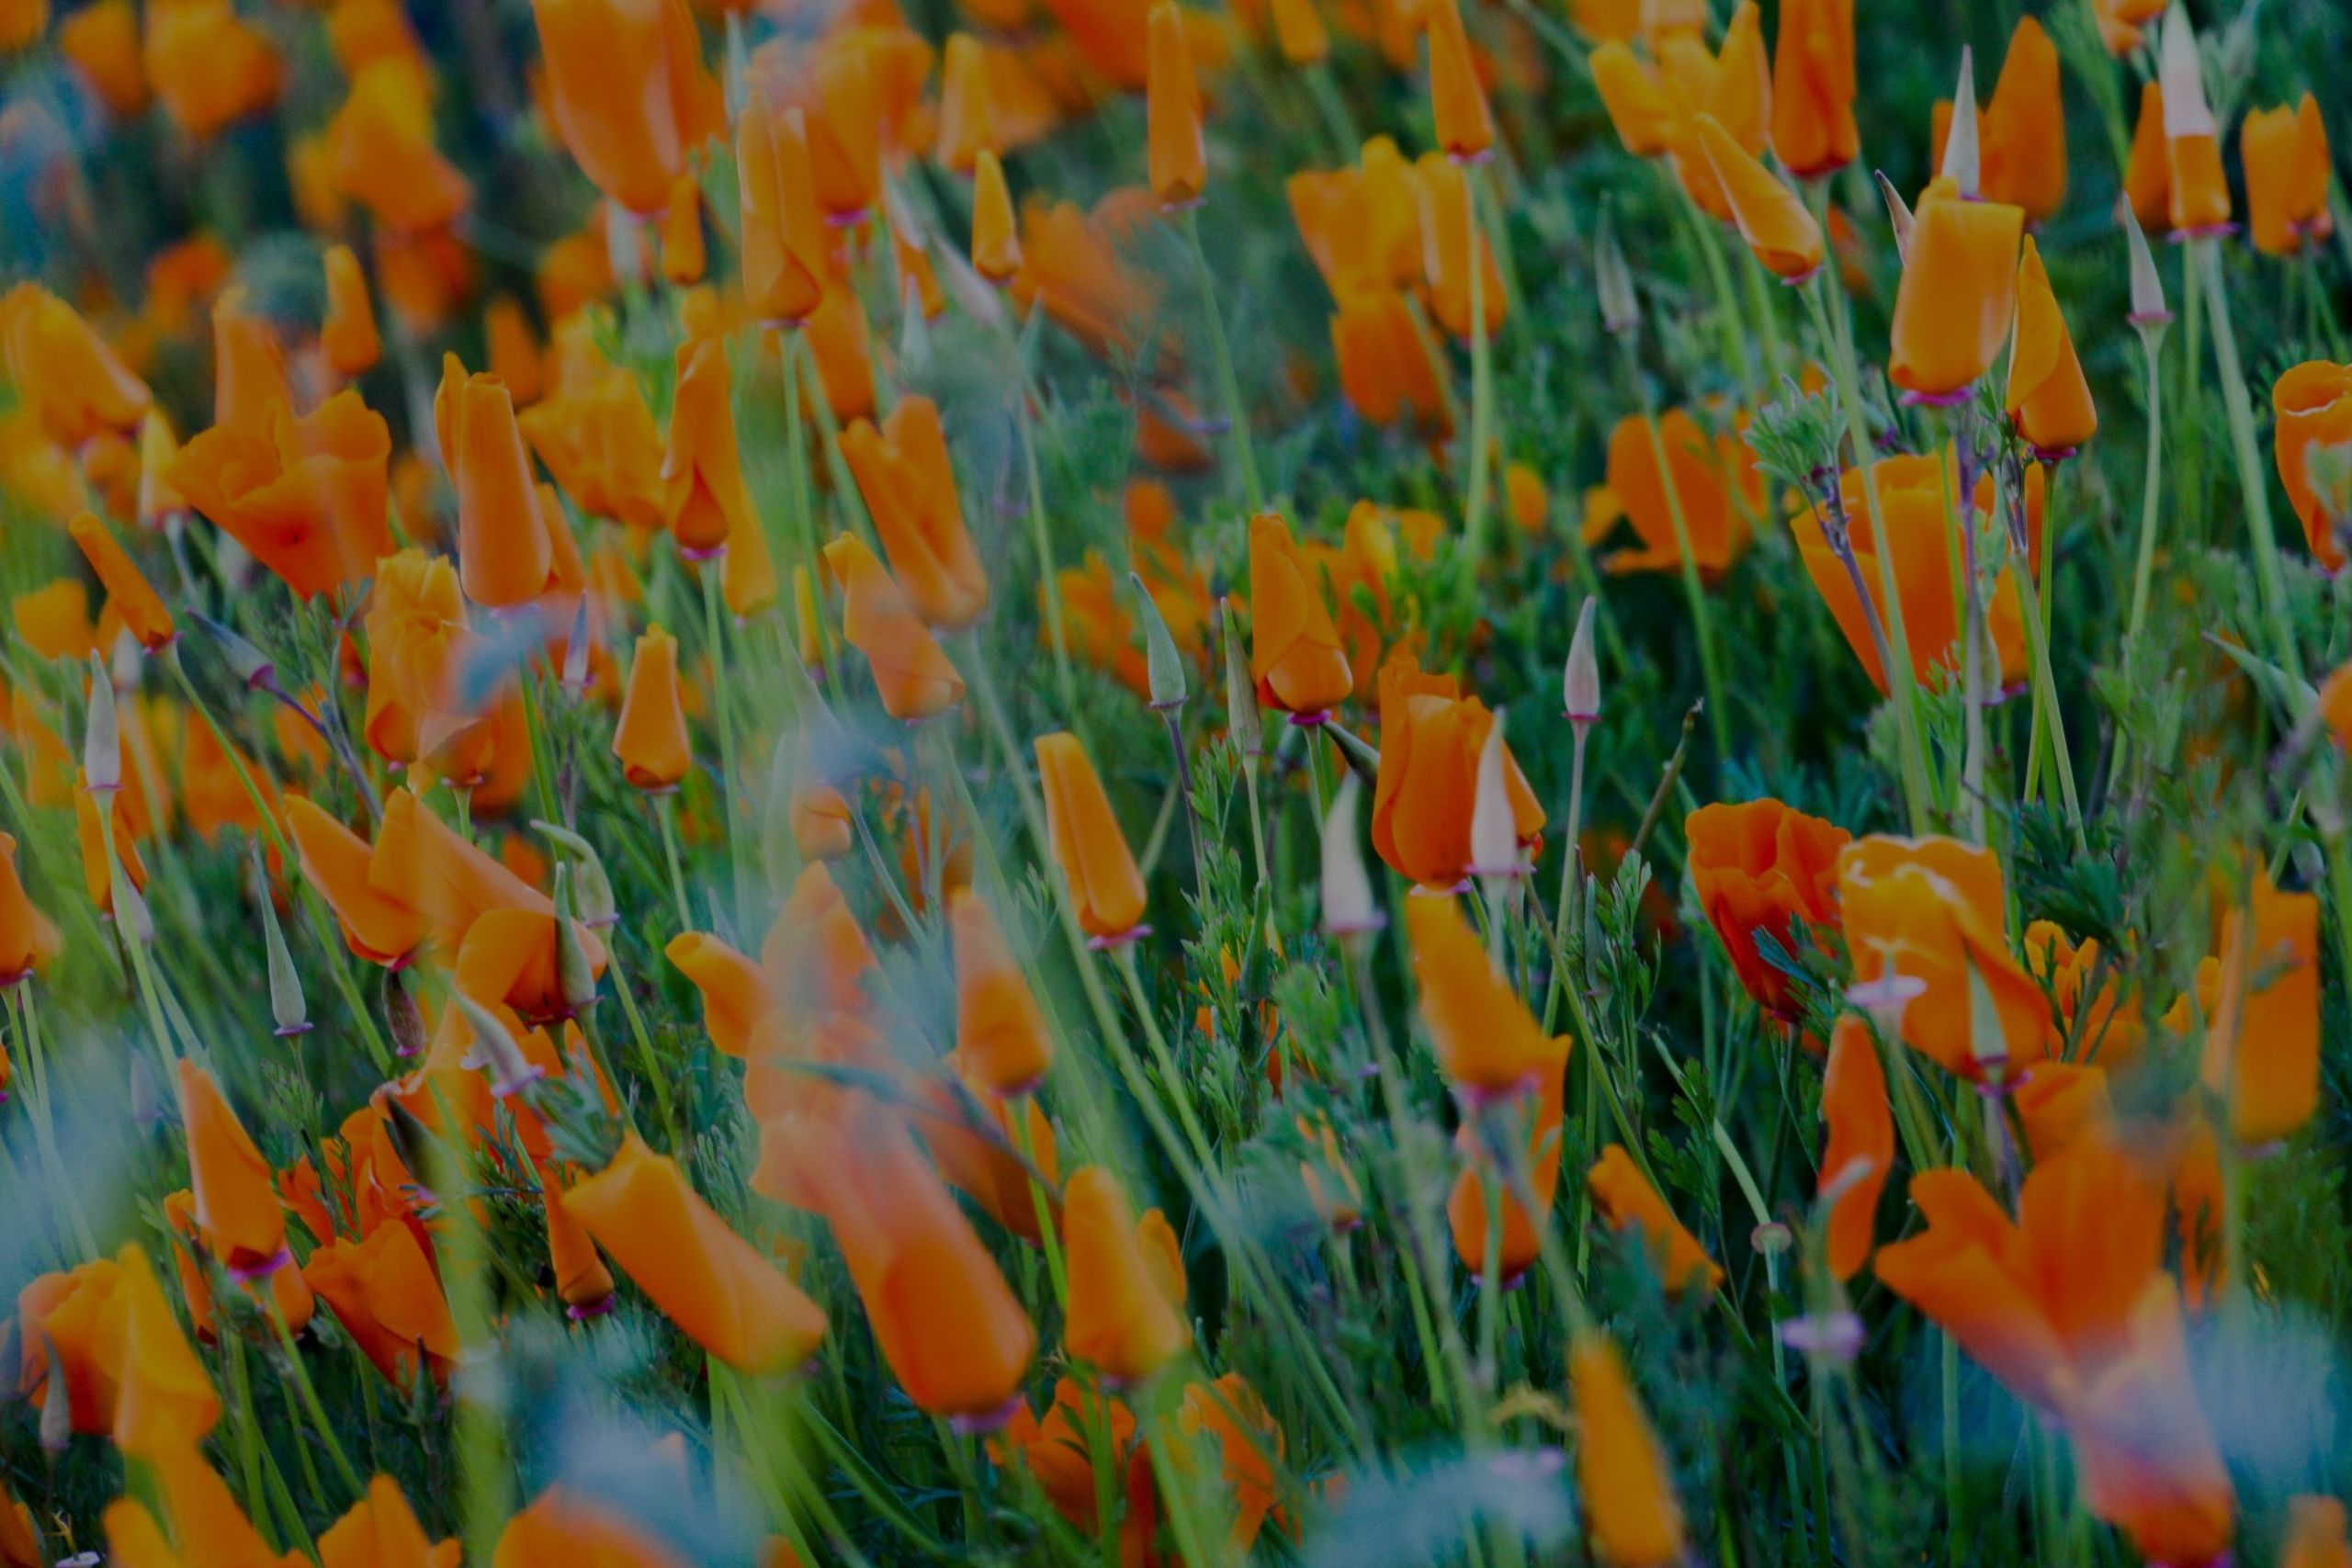 Superbloom: Los Angeles and Inland Valley Updates